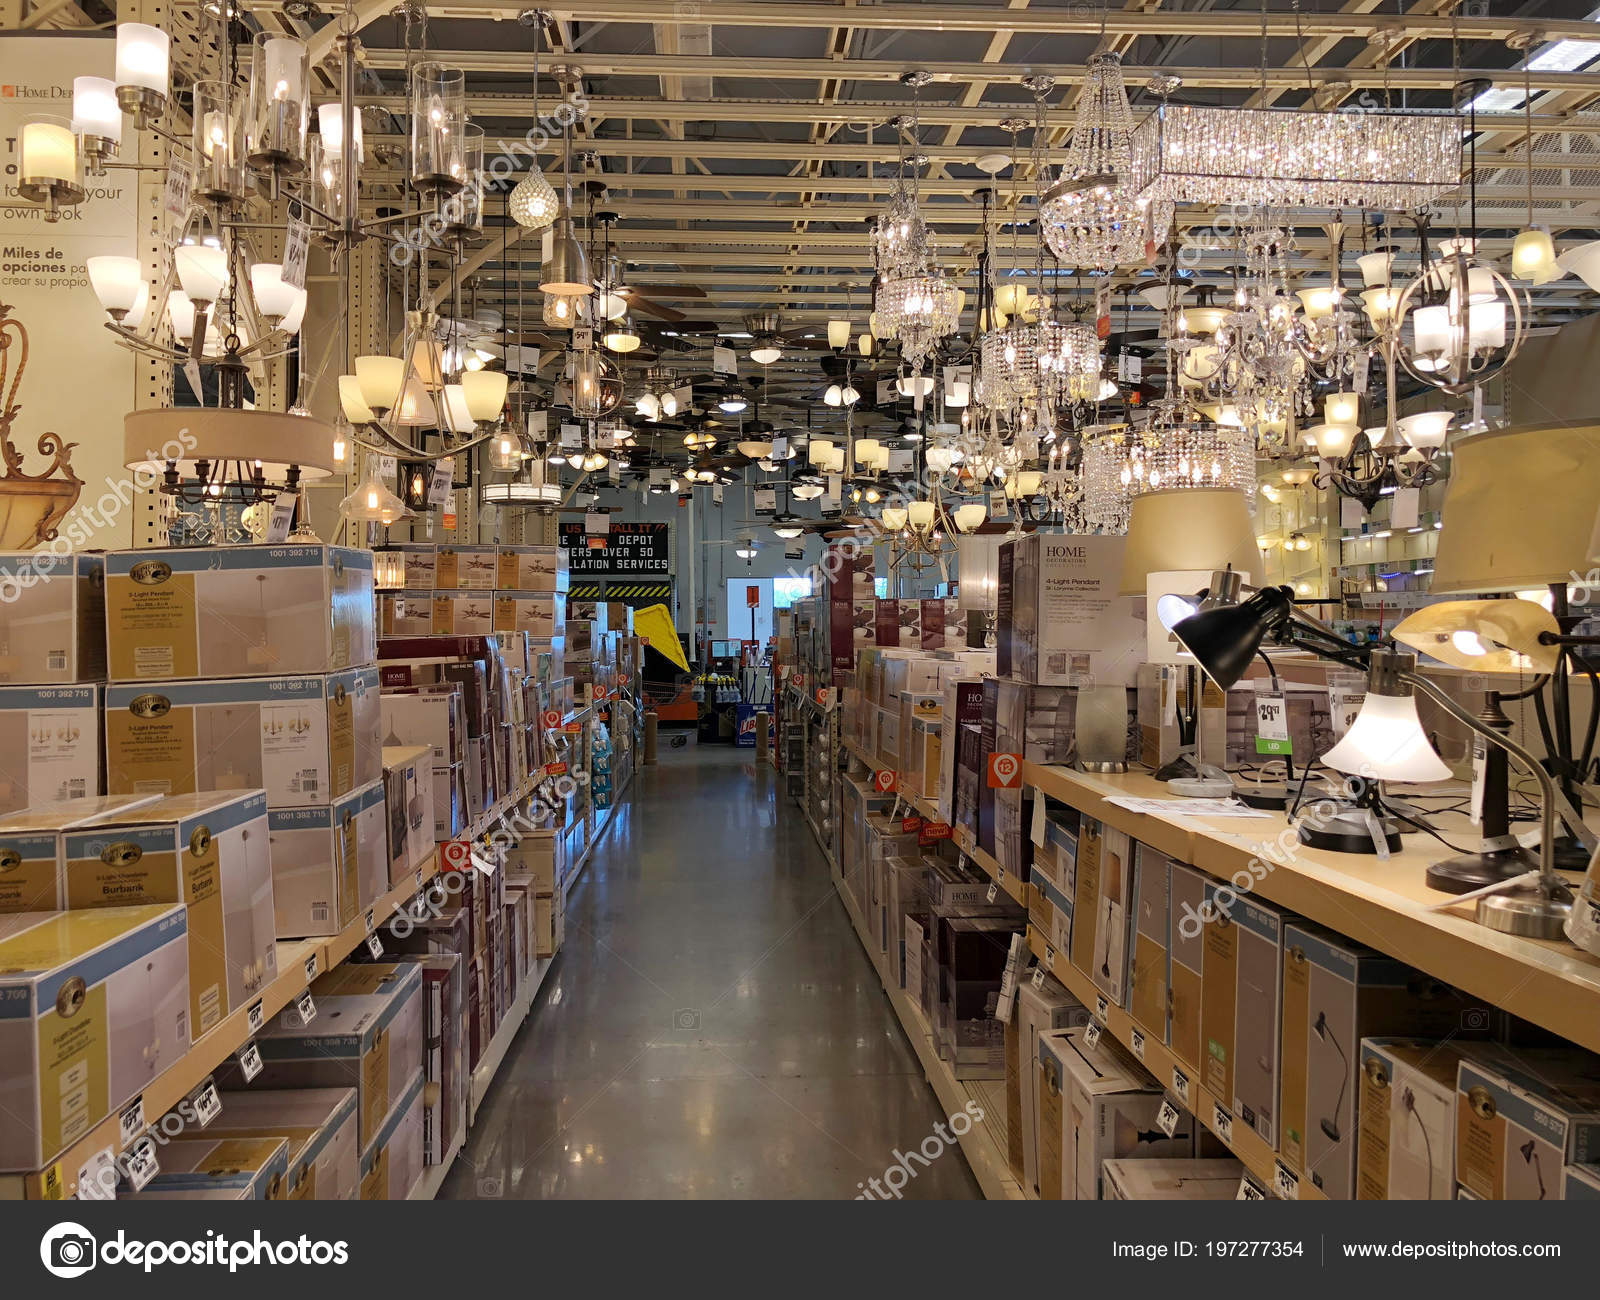 2aea027313b Home Depot is the largest Home Improvement Retailer in the United States.  Ceiling fan and lighting department located inside the store